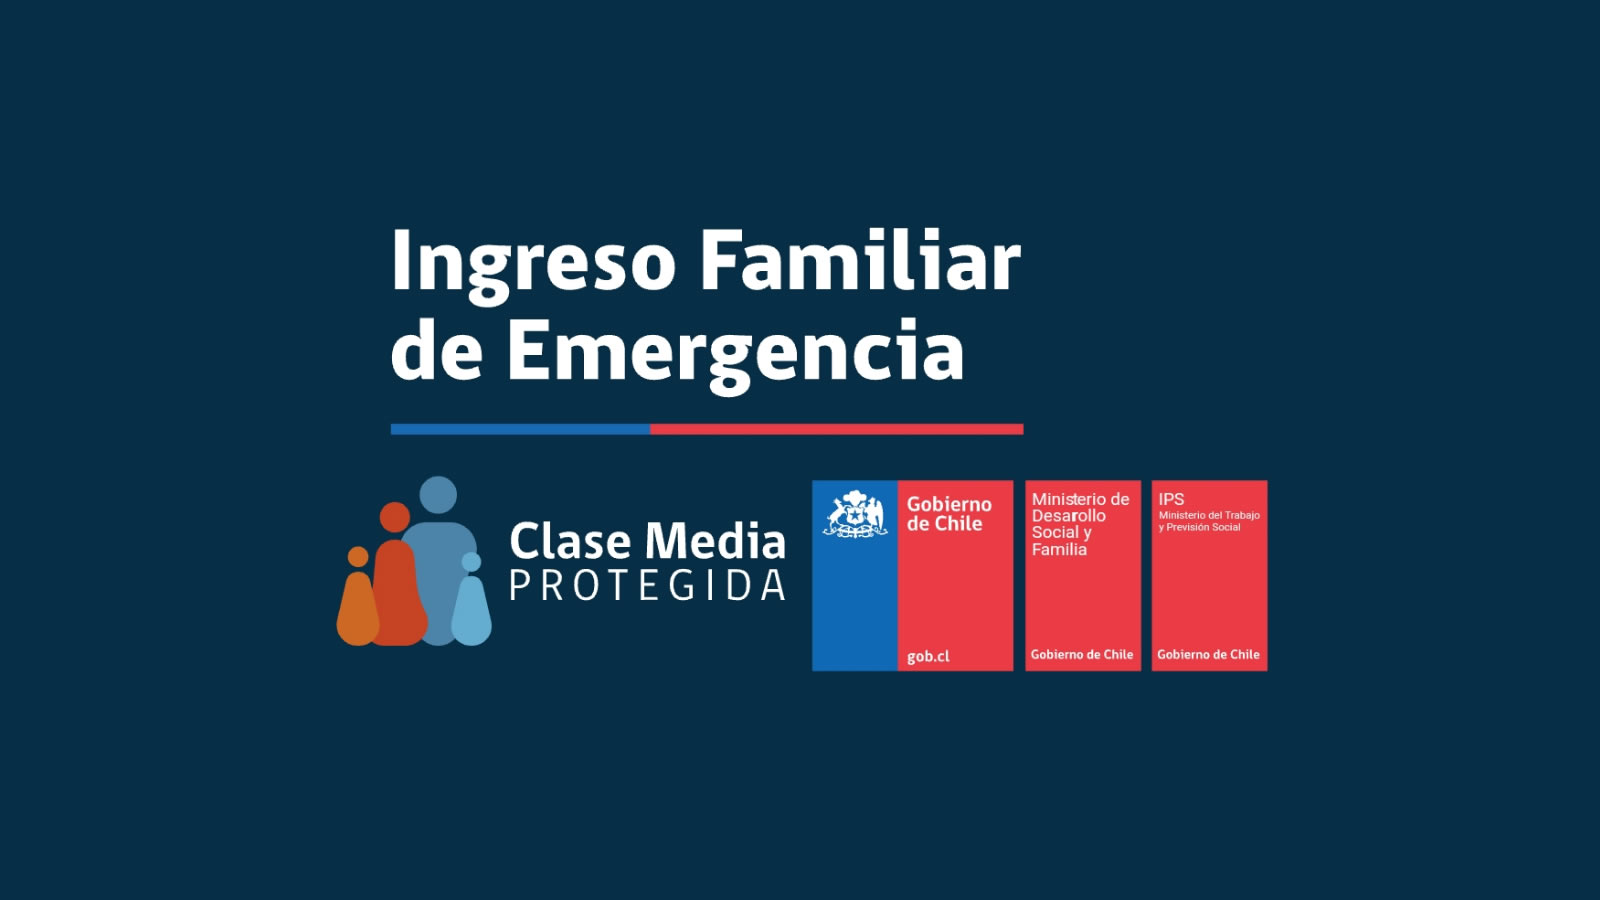 Ingreso Familiar de Emergencia postulaciones